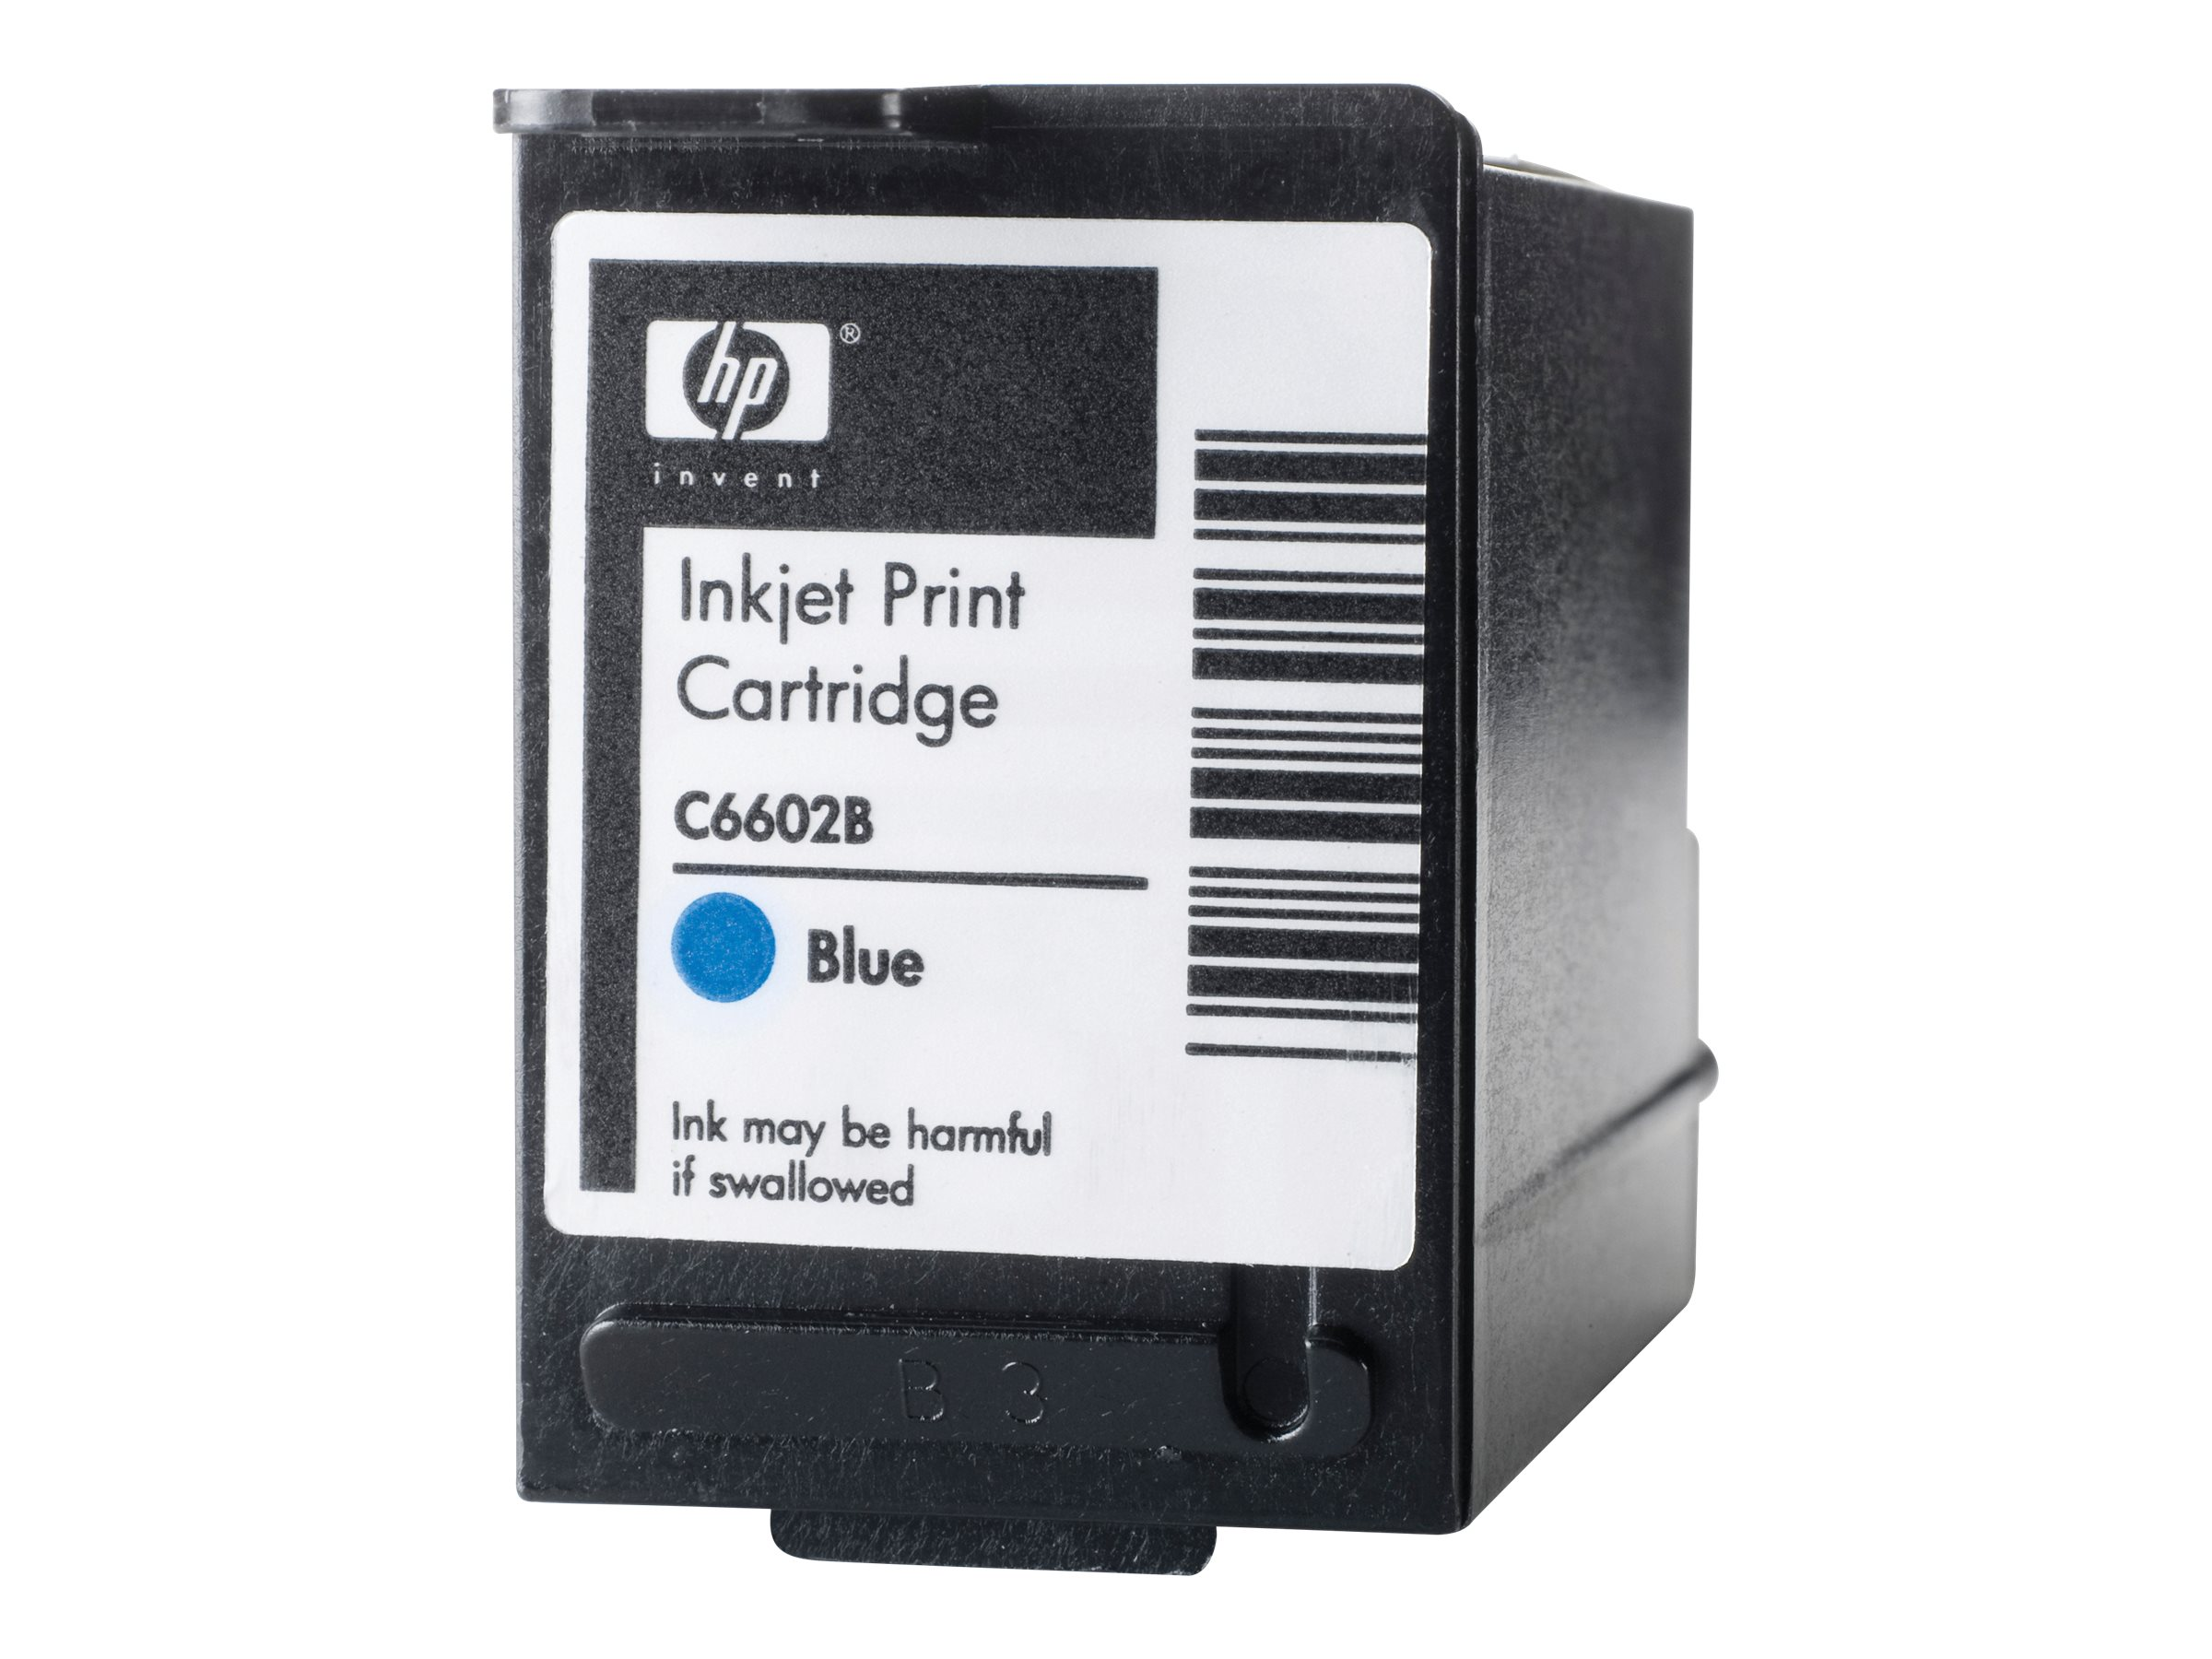 HP Blue Generic Reduced Height Ink Cartridge, C6602B